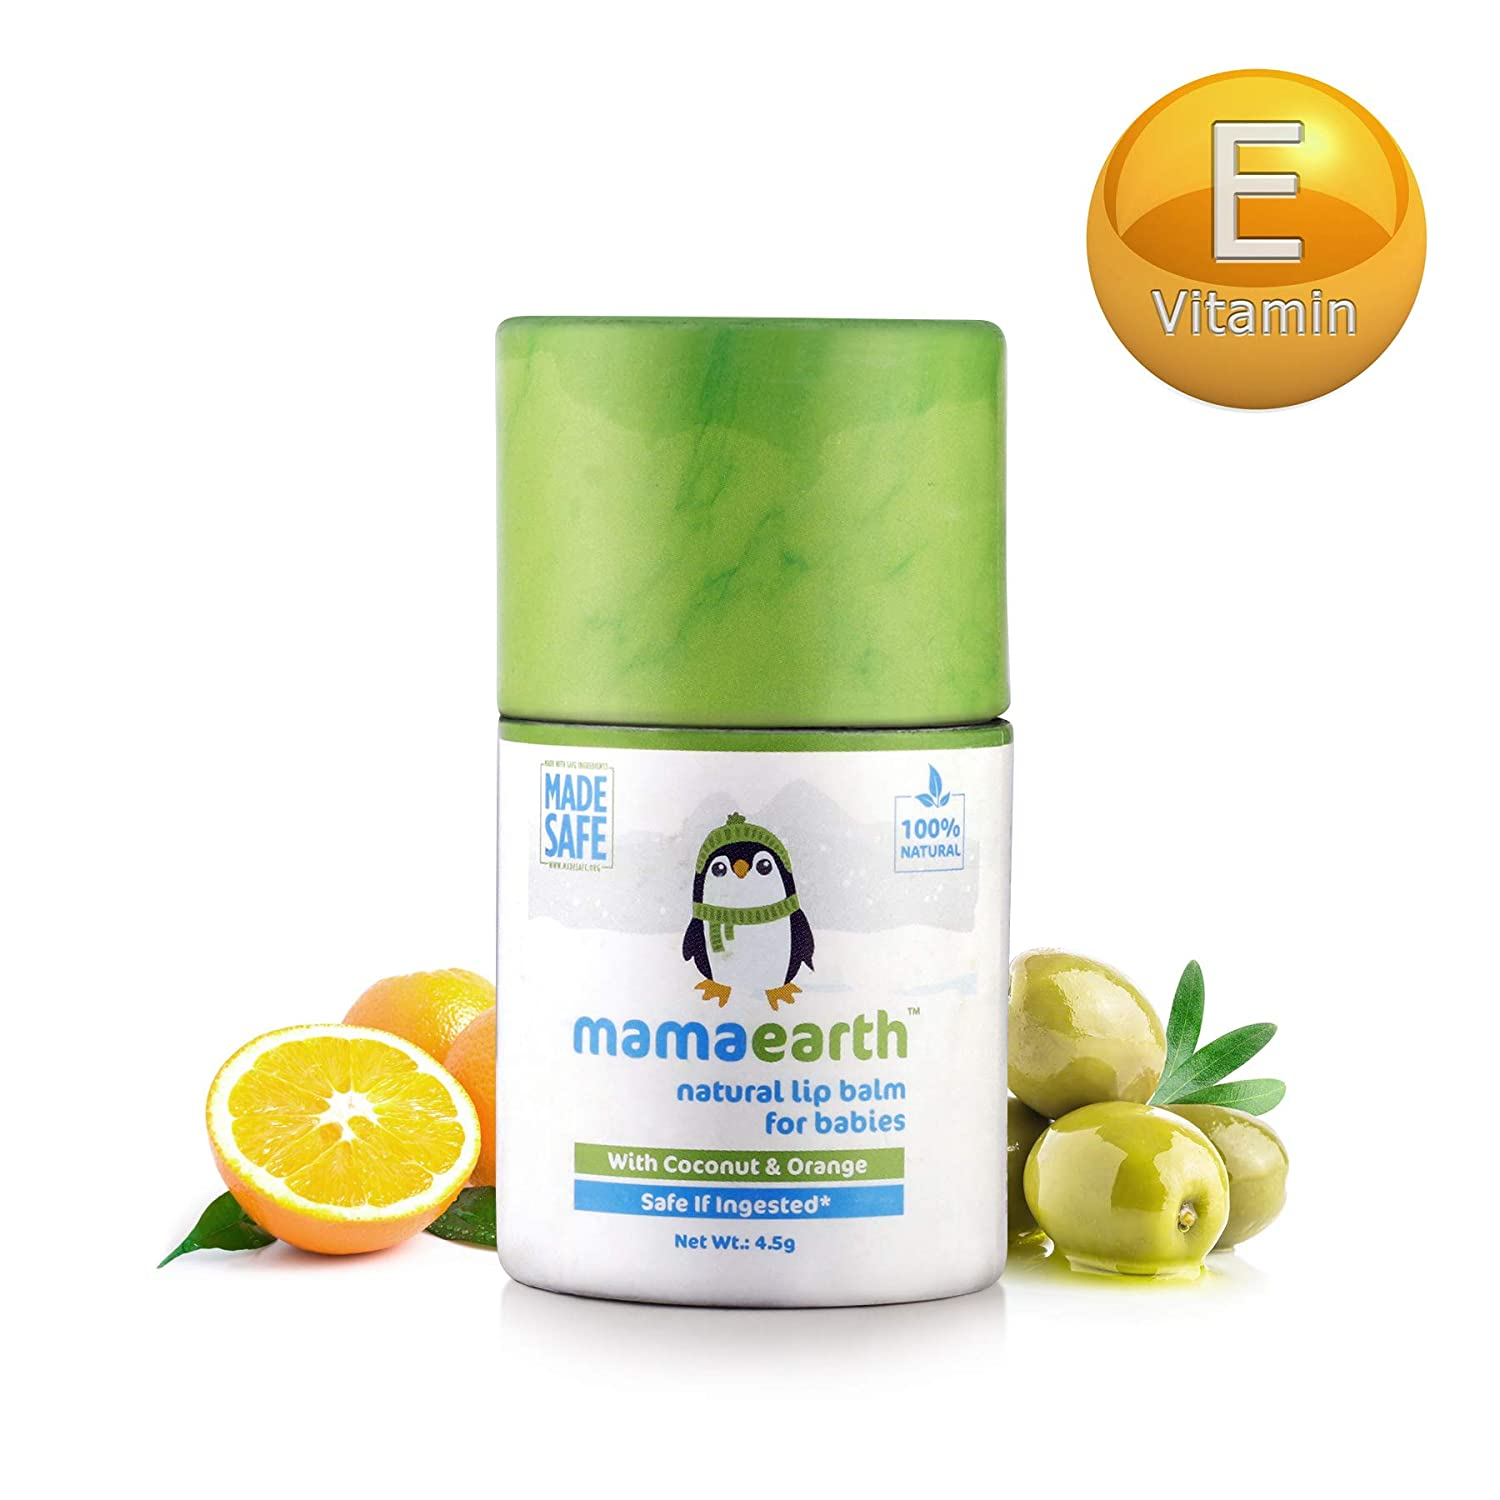 Mamaearth Natural Baby Lip Balm For Babies With Coconut Oil, Cocoa Butter & Orange